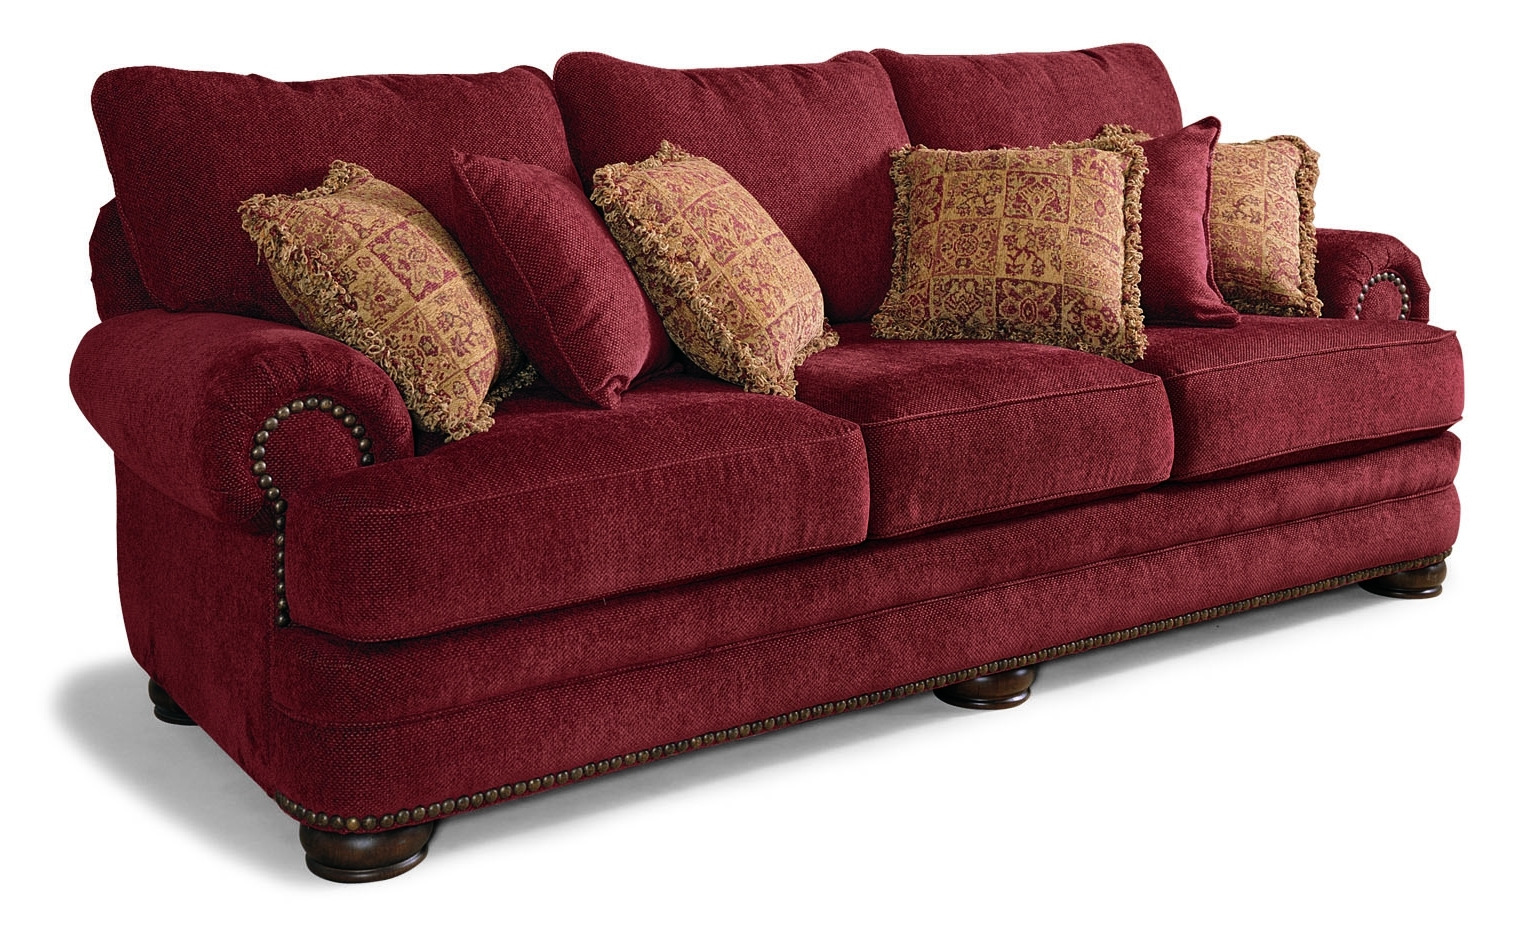 Stanton Stationary Sofa – Lane 86330, 863 30 Within 2019 Lane Furniture Sofas (View 20 of 20)